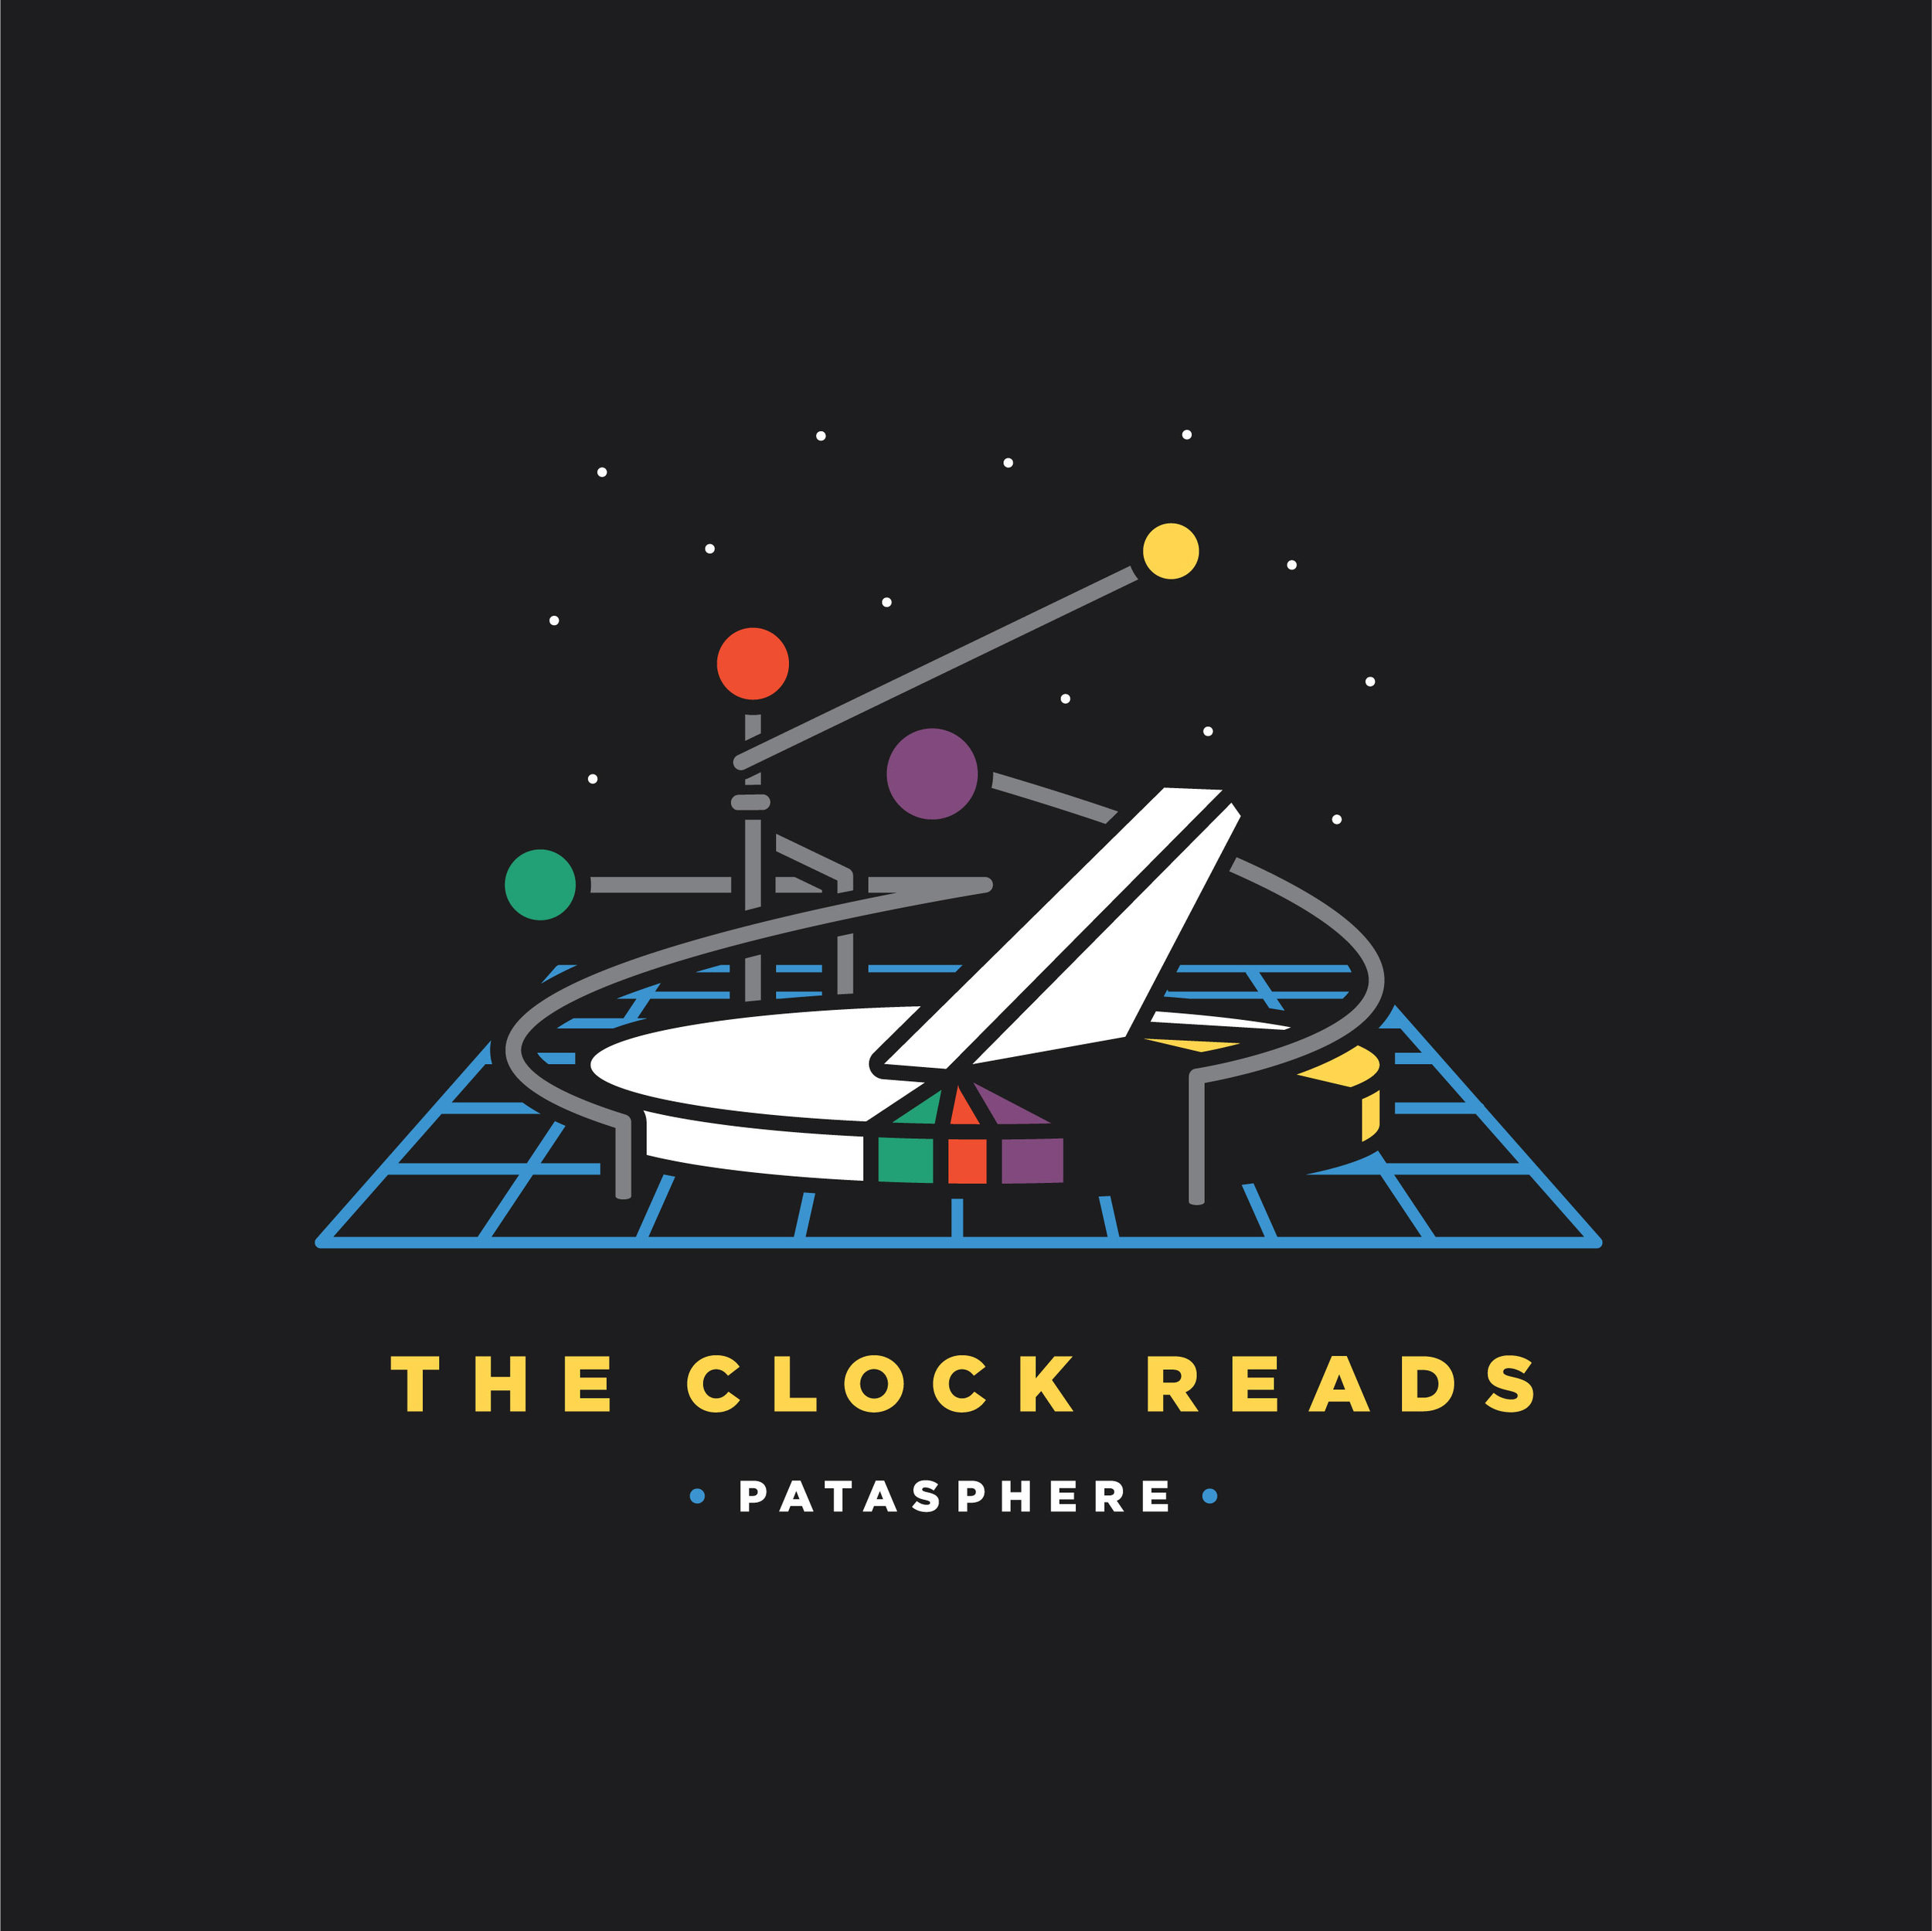 theClockReads_patasphere_artwork_square.jpg